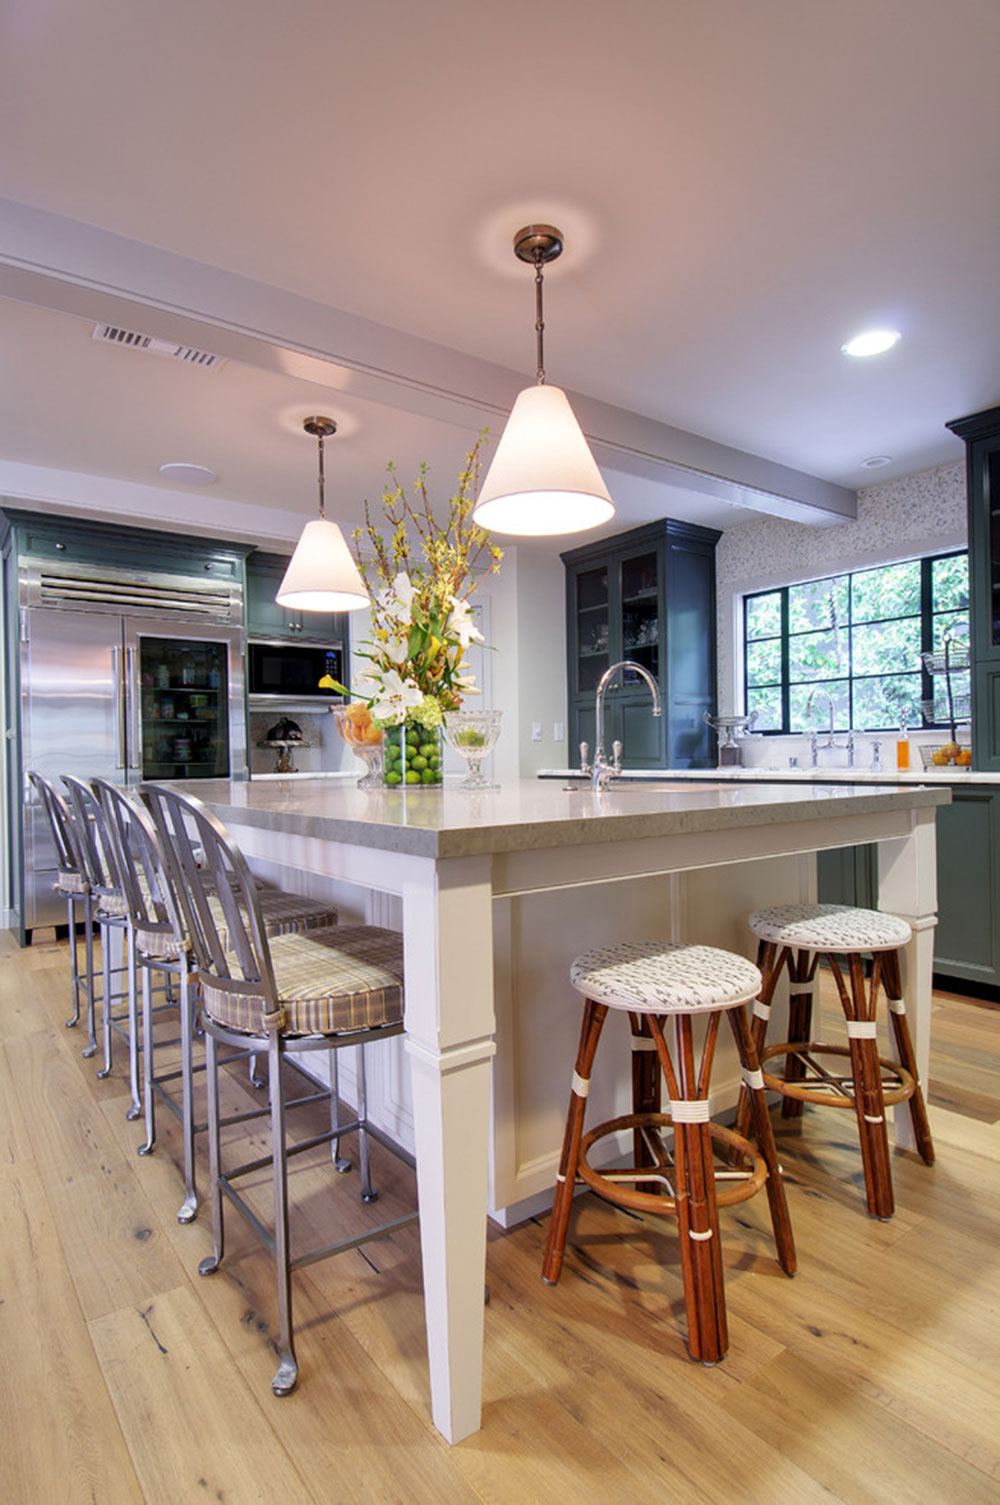 Uncategorized Kitchen Islands With Seating modern kitchen island designs with seating 7 island